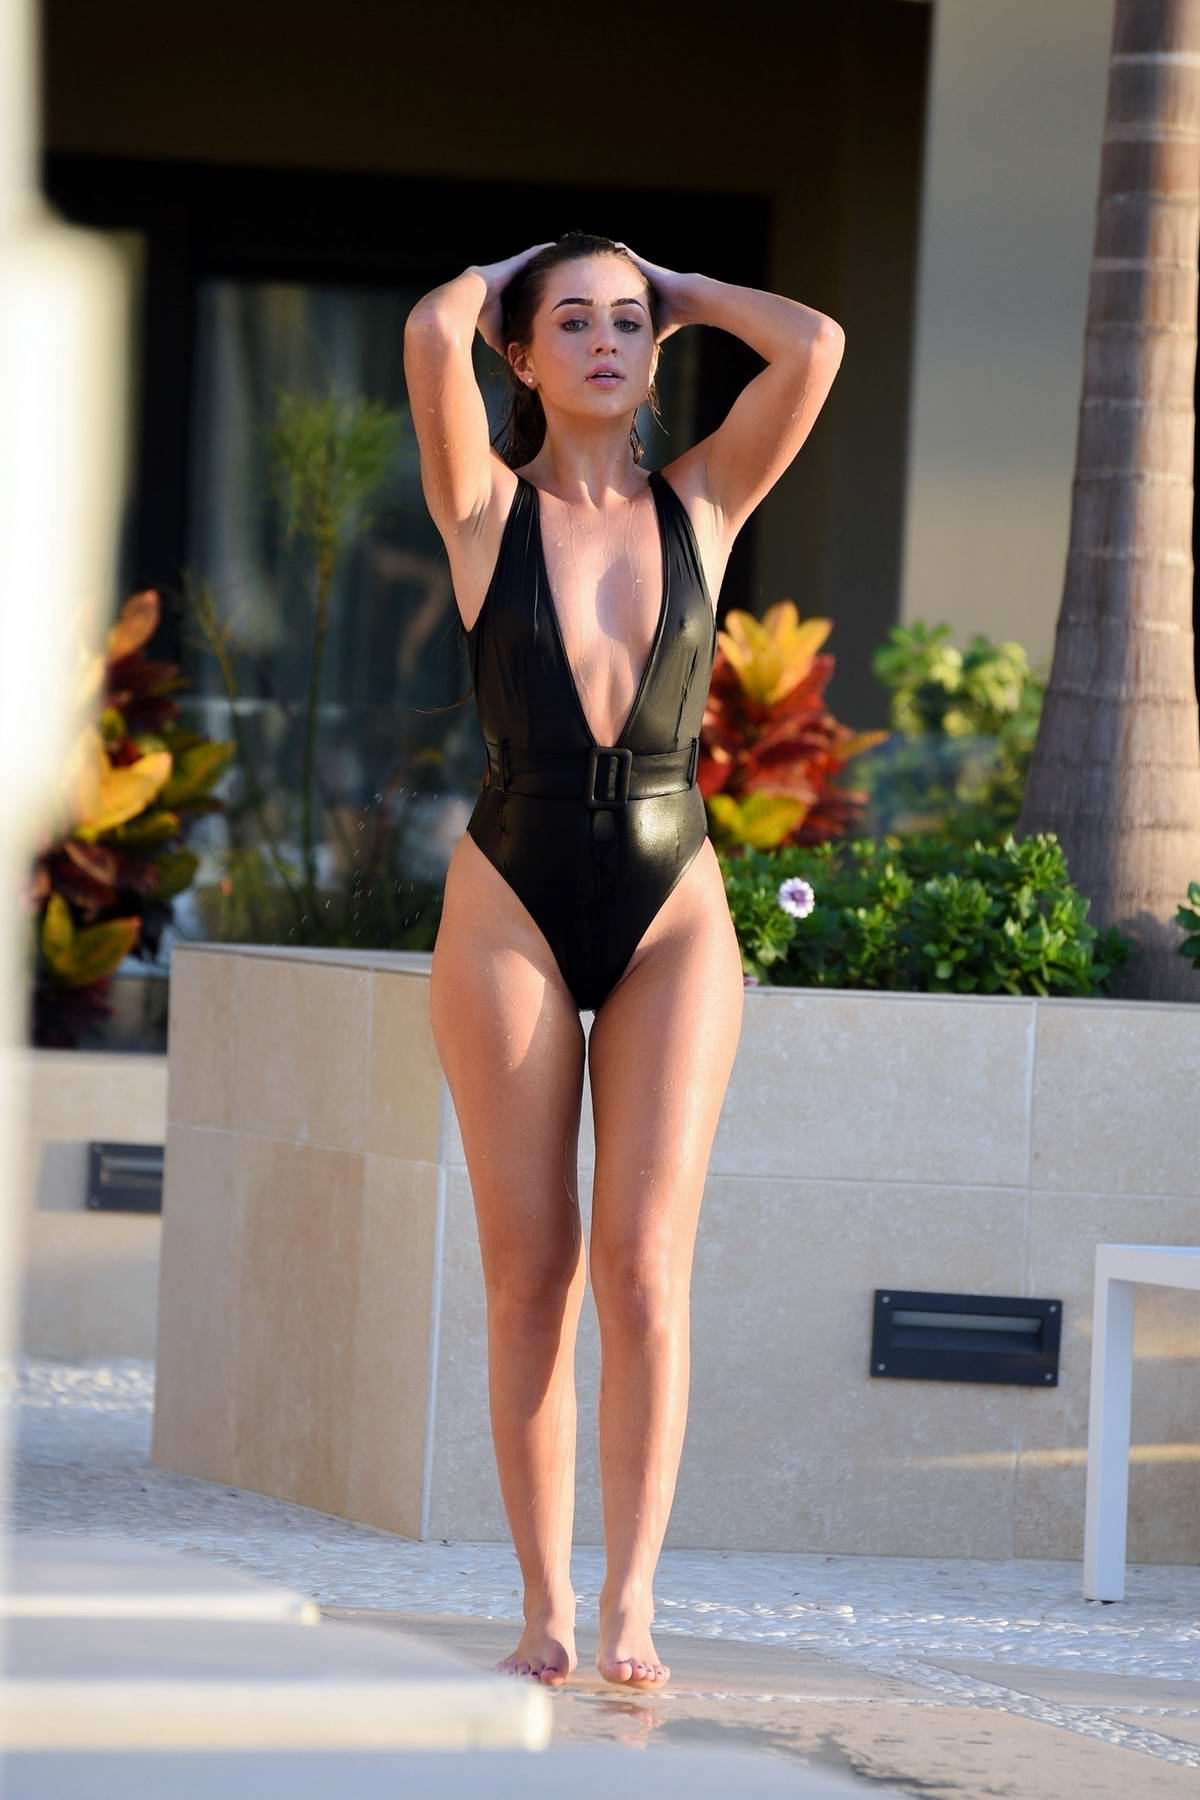 Georgia Steel wears a black swimsuit while enjoying the pool in Tenerife, Spain